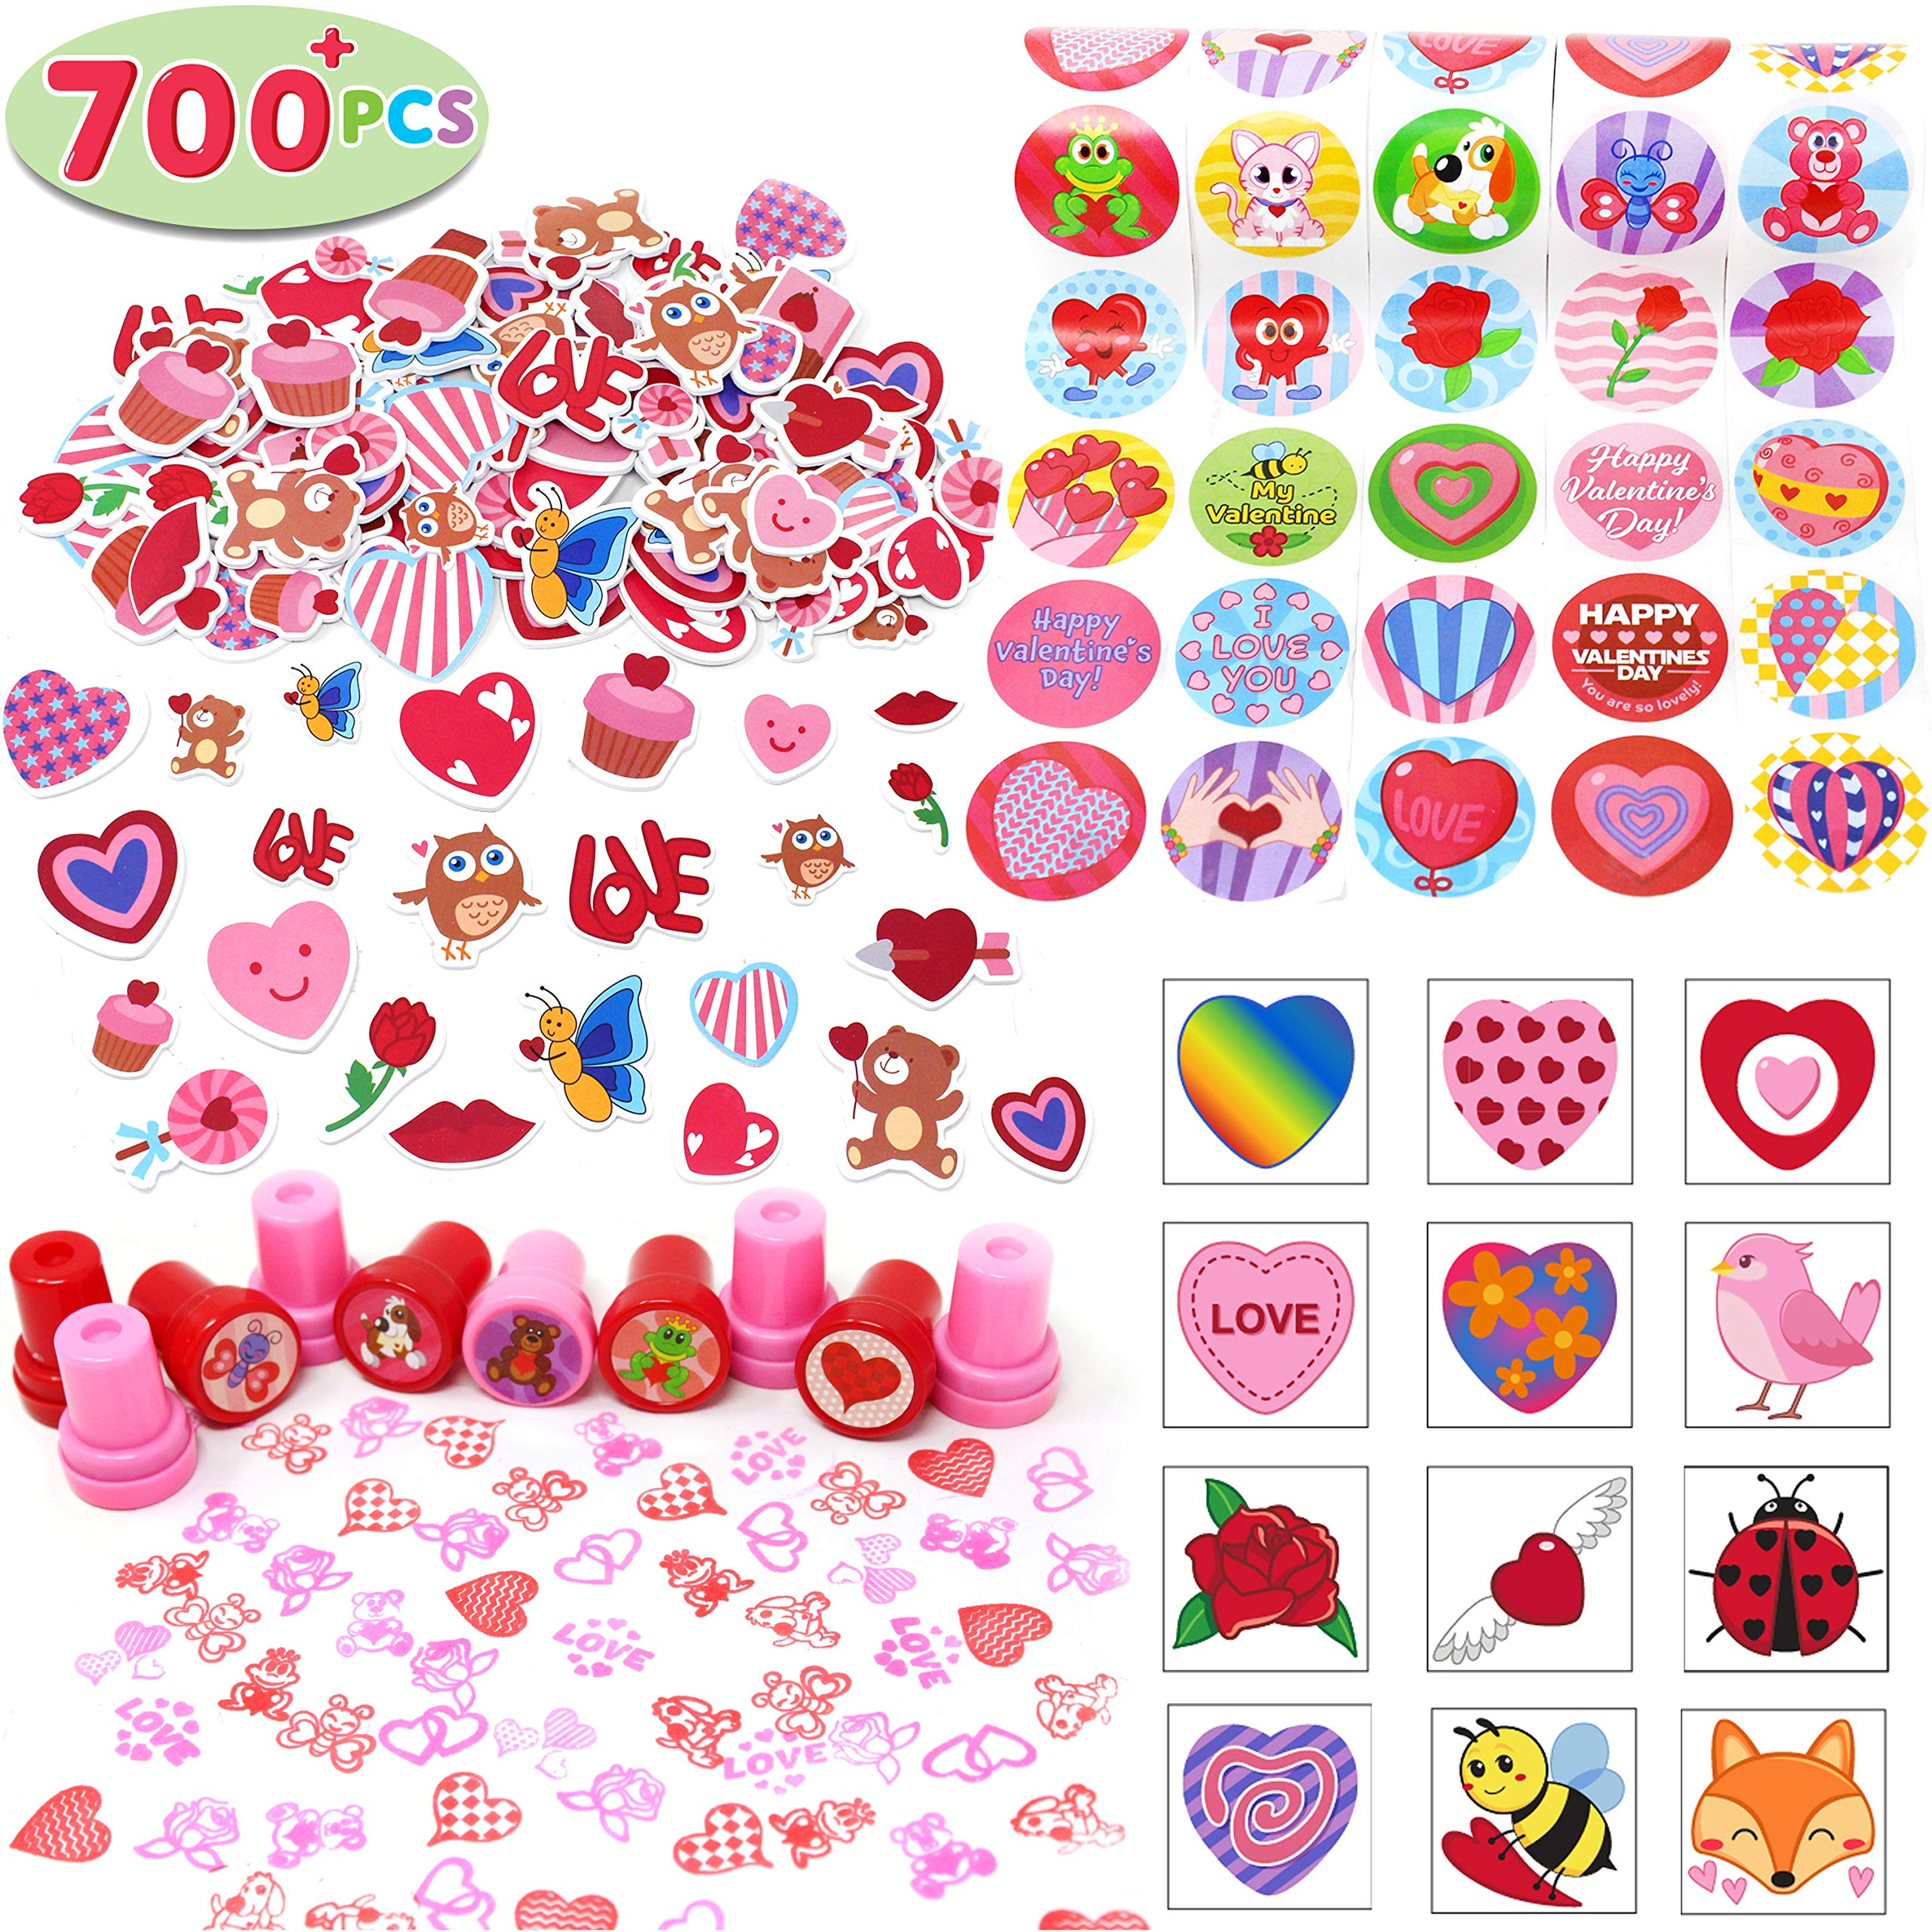 3cce013fb56 700+ Pcs Happy Valentines Day Party Favor Supplies Craft Set (Foam Stickers